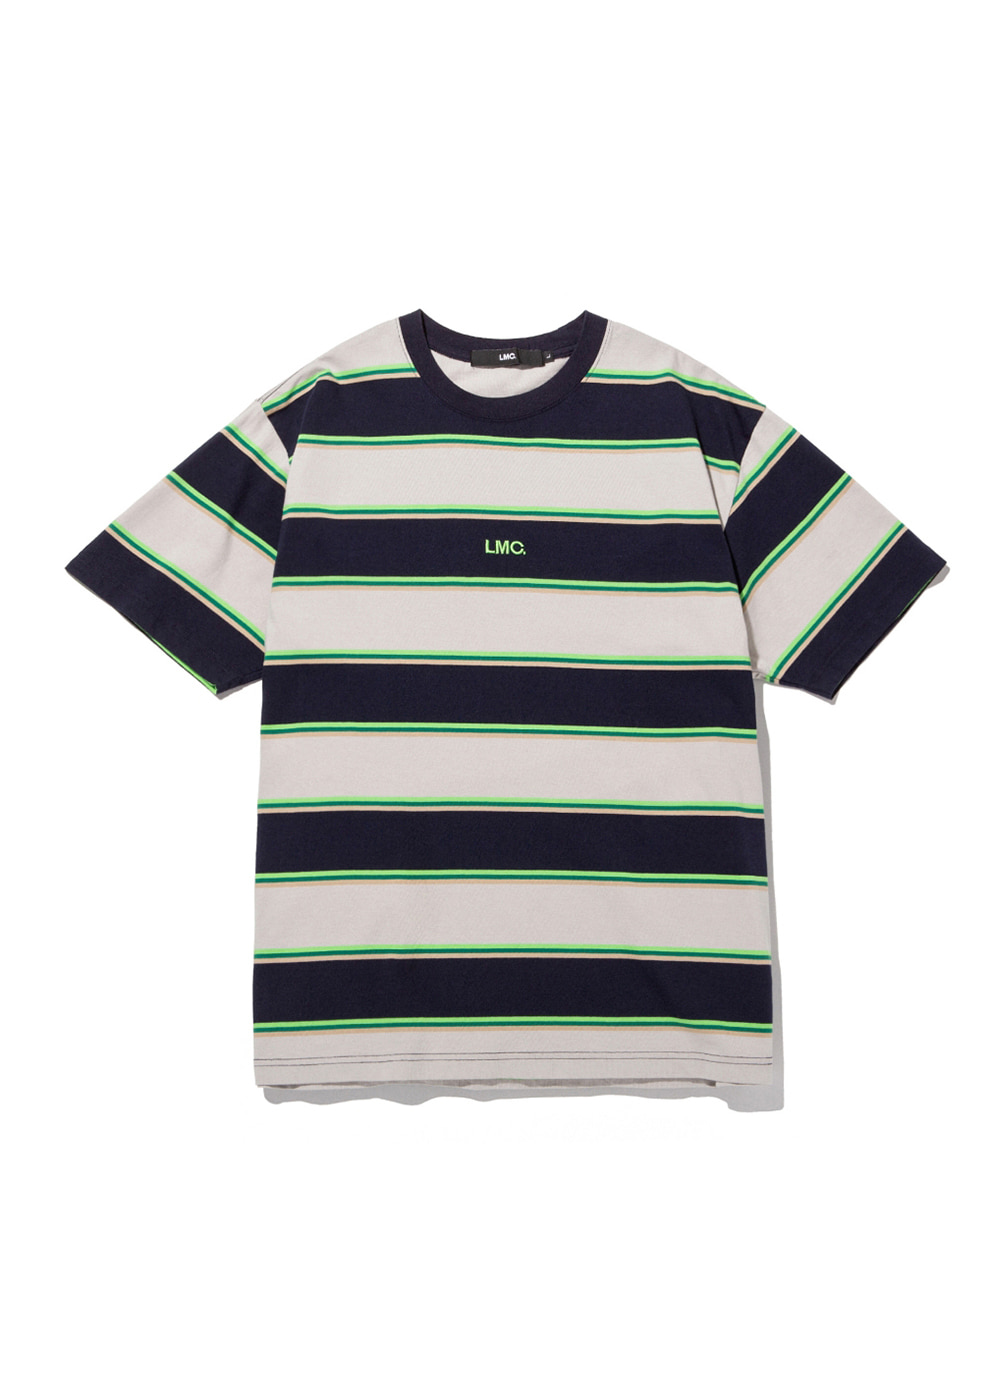 LMC MULTI COLOR STRIPE TEE navy